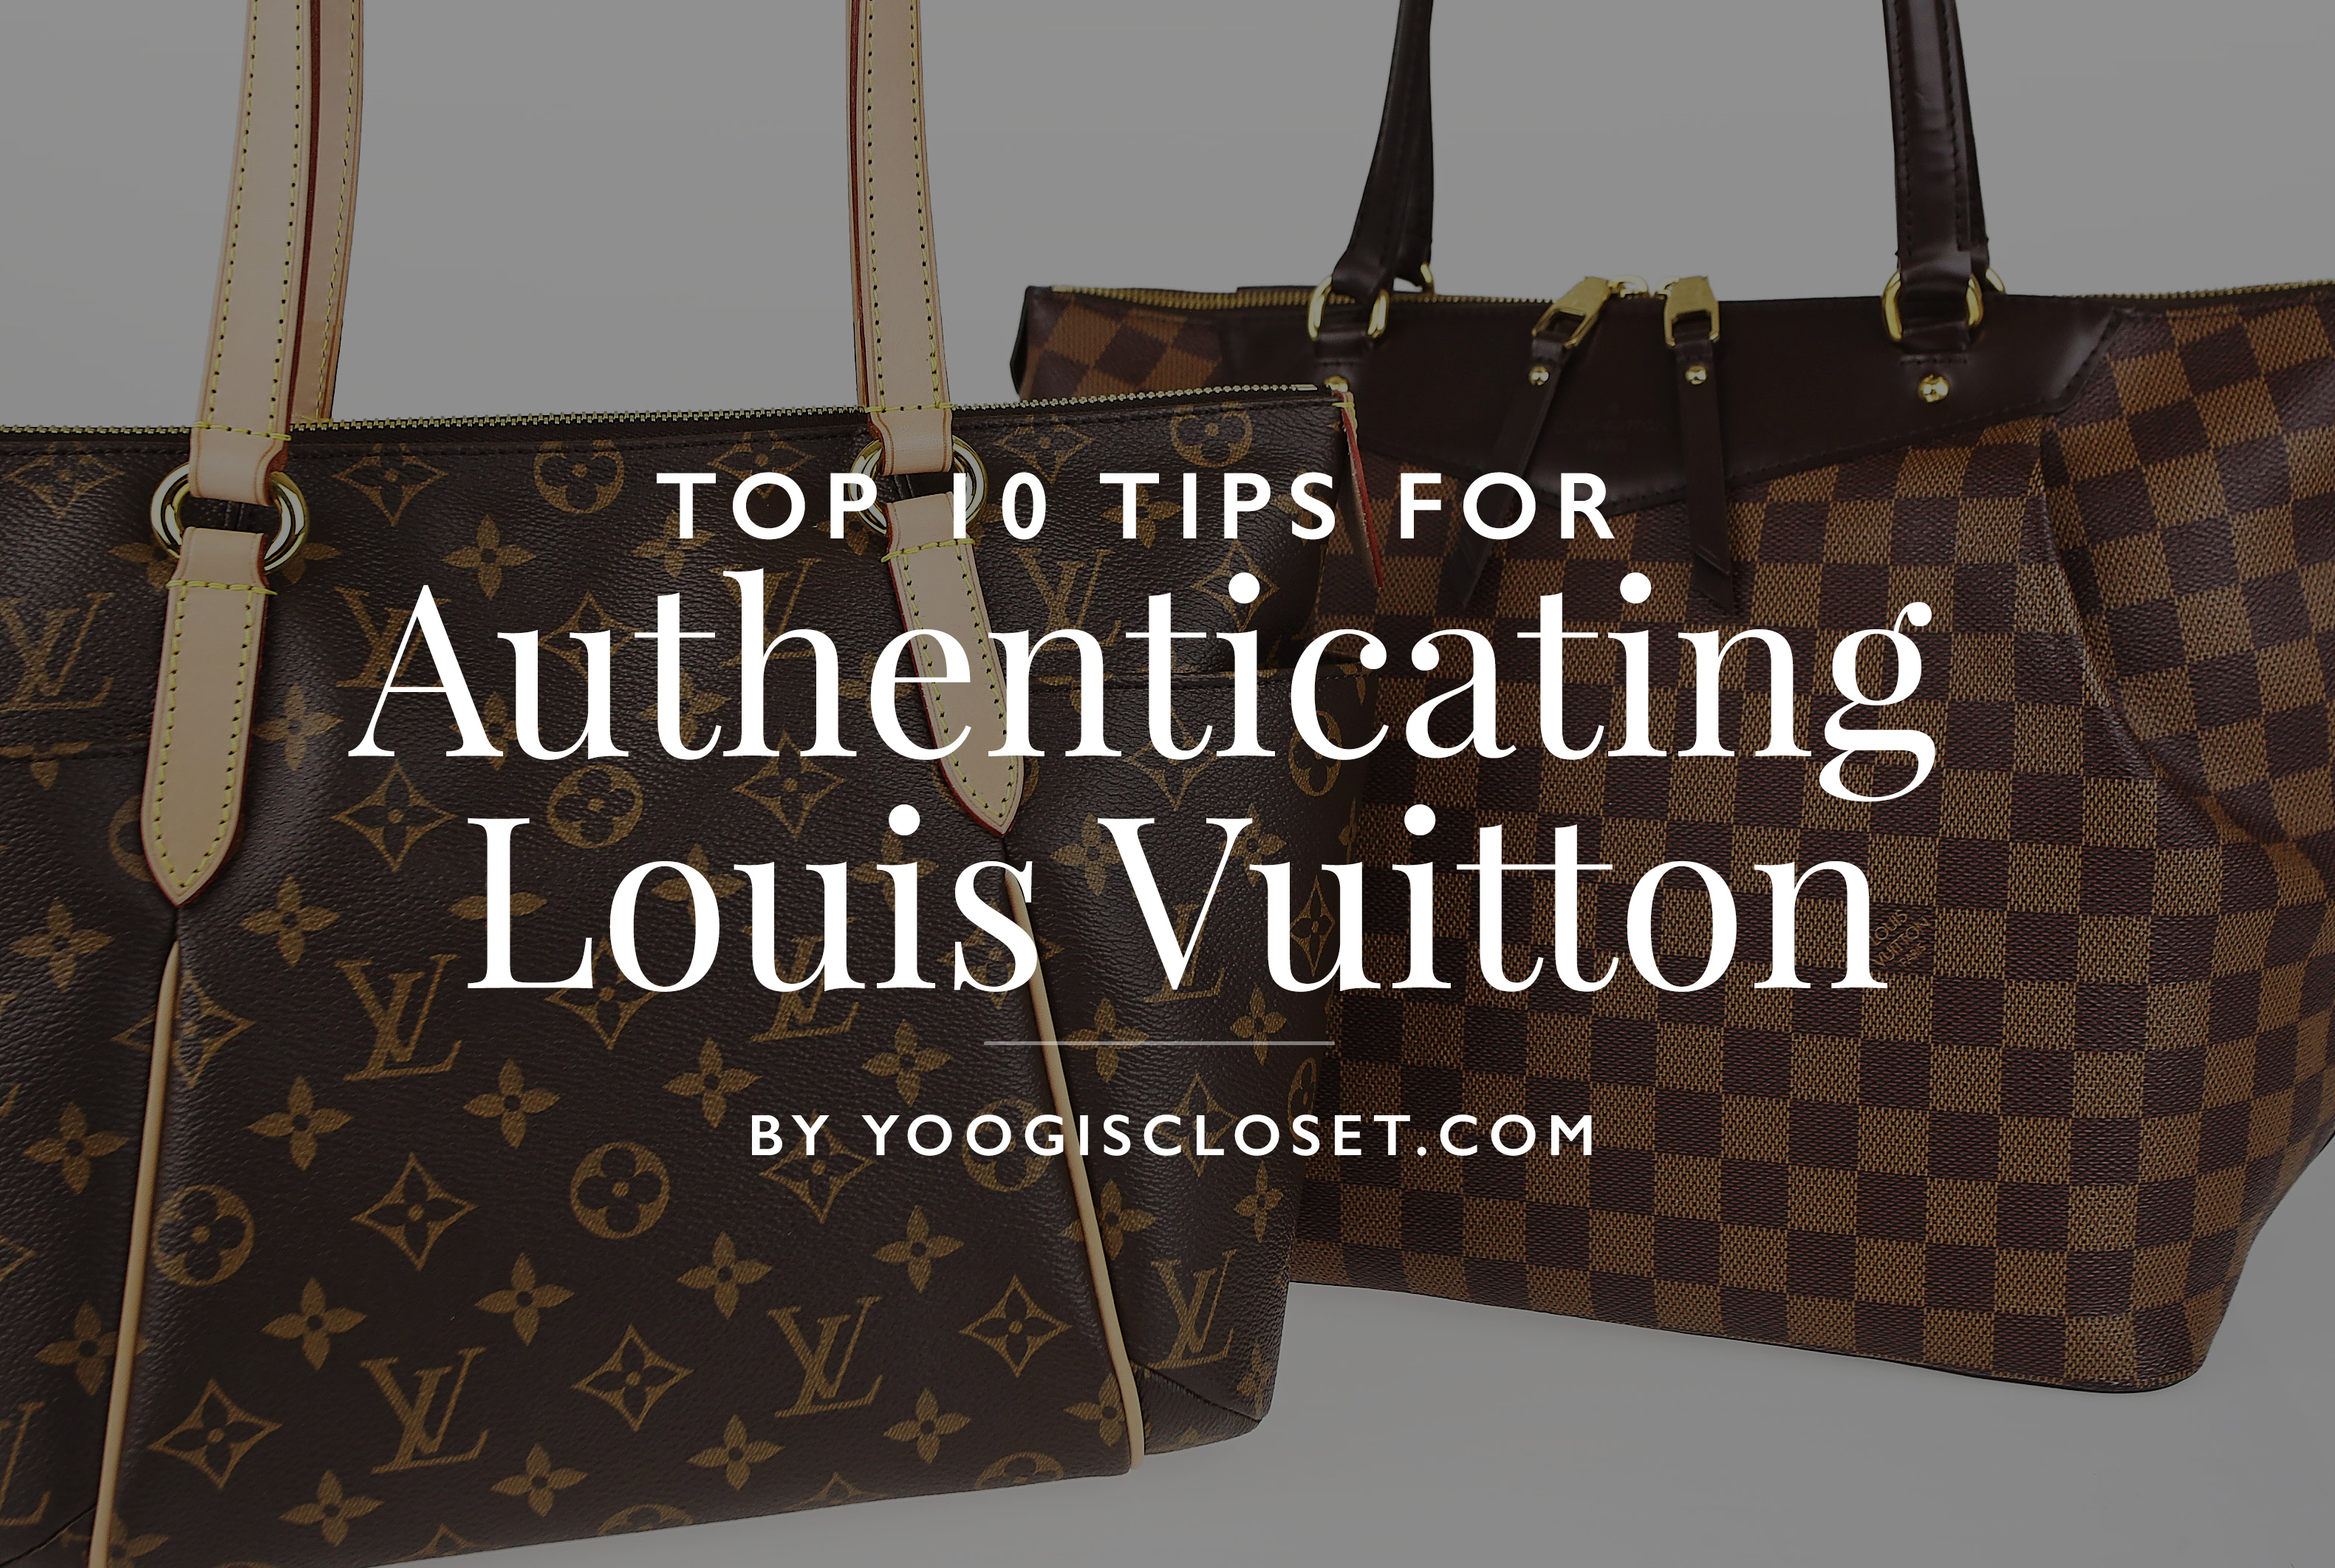 797f5ff73a2b Top 10 Tips For Authenticating Louis Vuitton - Yoogi s Closet Blog